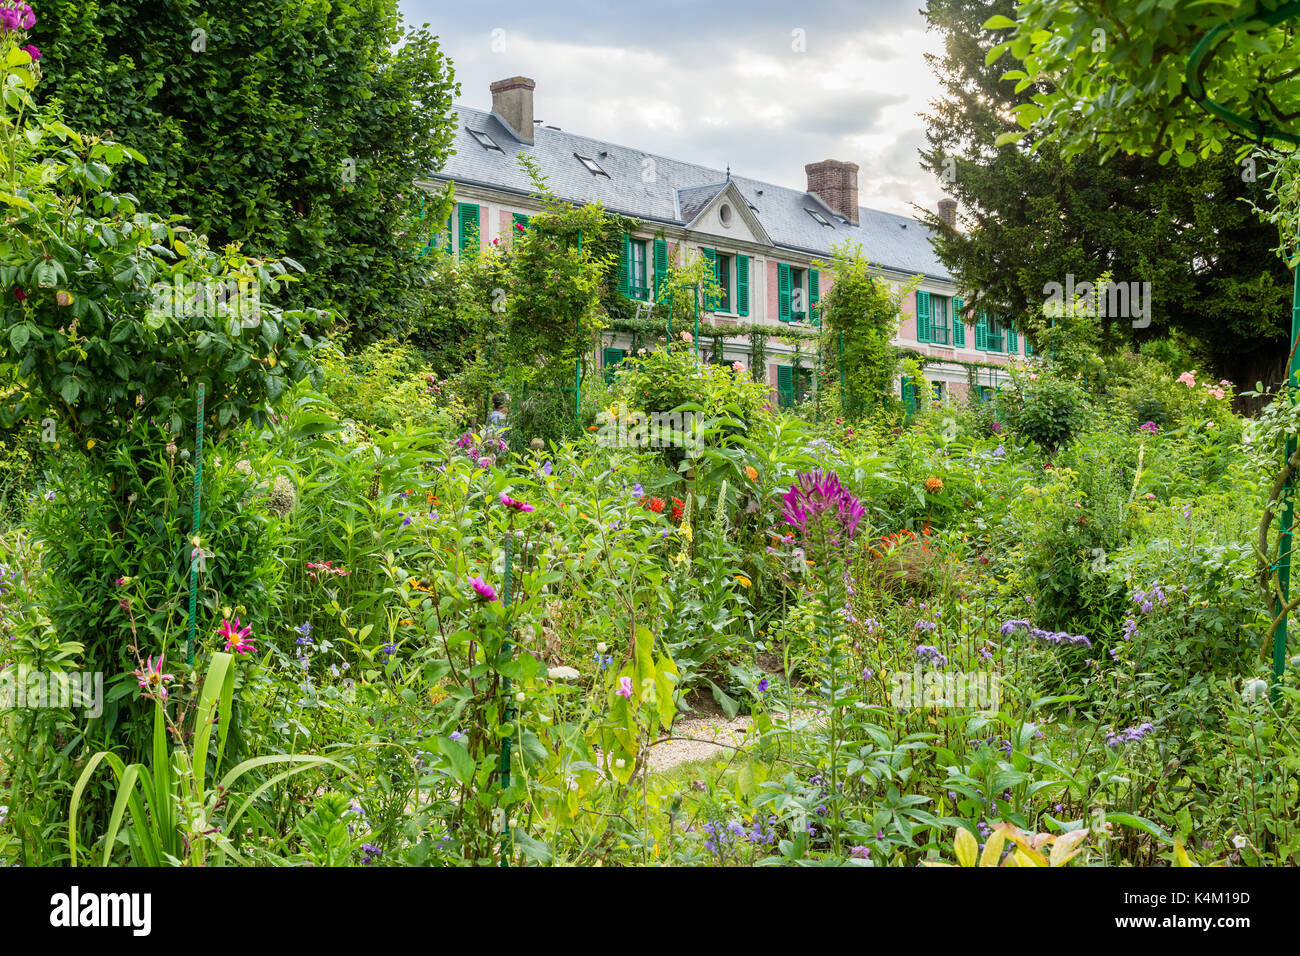 giverny monet garden stock photos giverny monet garden stock images alamy. Black Bedroom Furniture Sets. Home Design Ideas